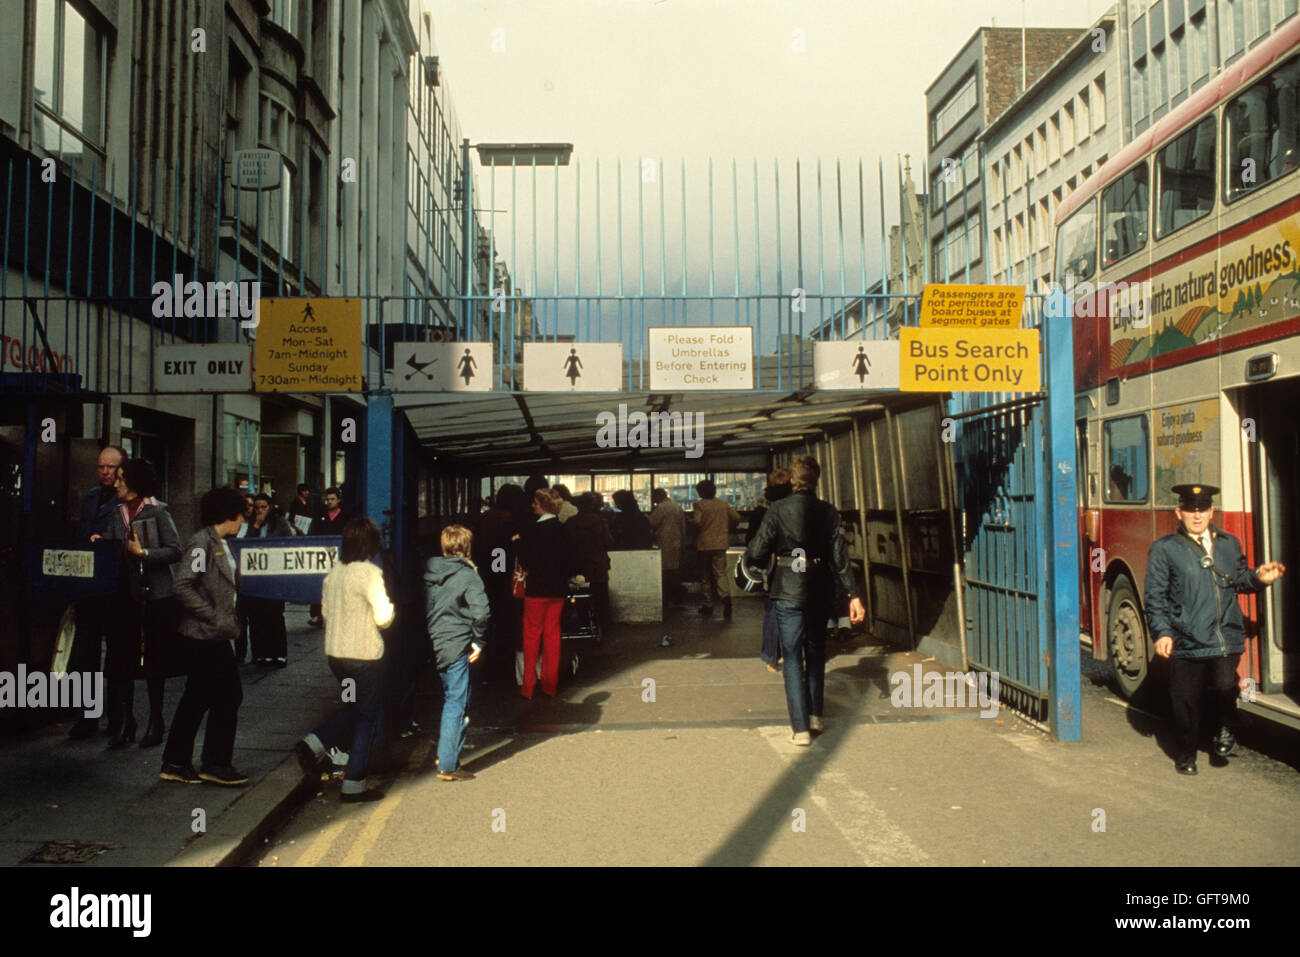 Northern Ireland The Troubles. 1980s. 1981, Searches are carried out on shopper entering secure area of Belfast. - Stock Image